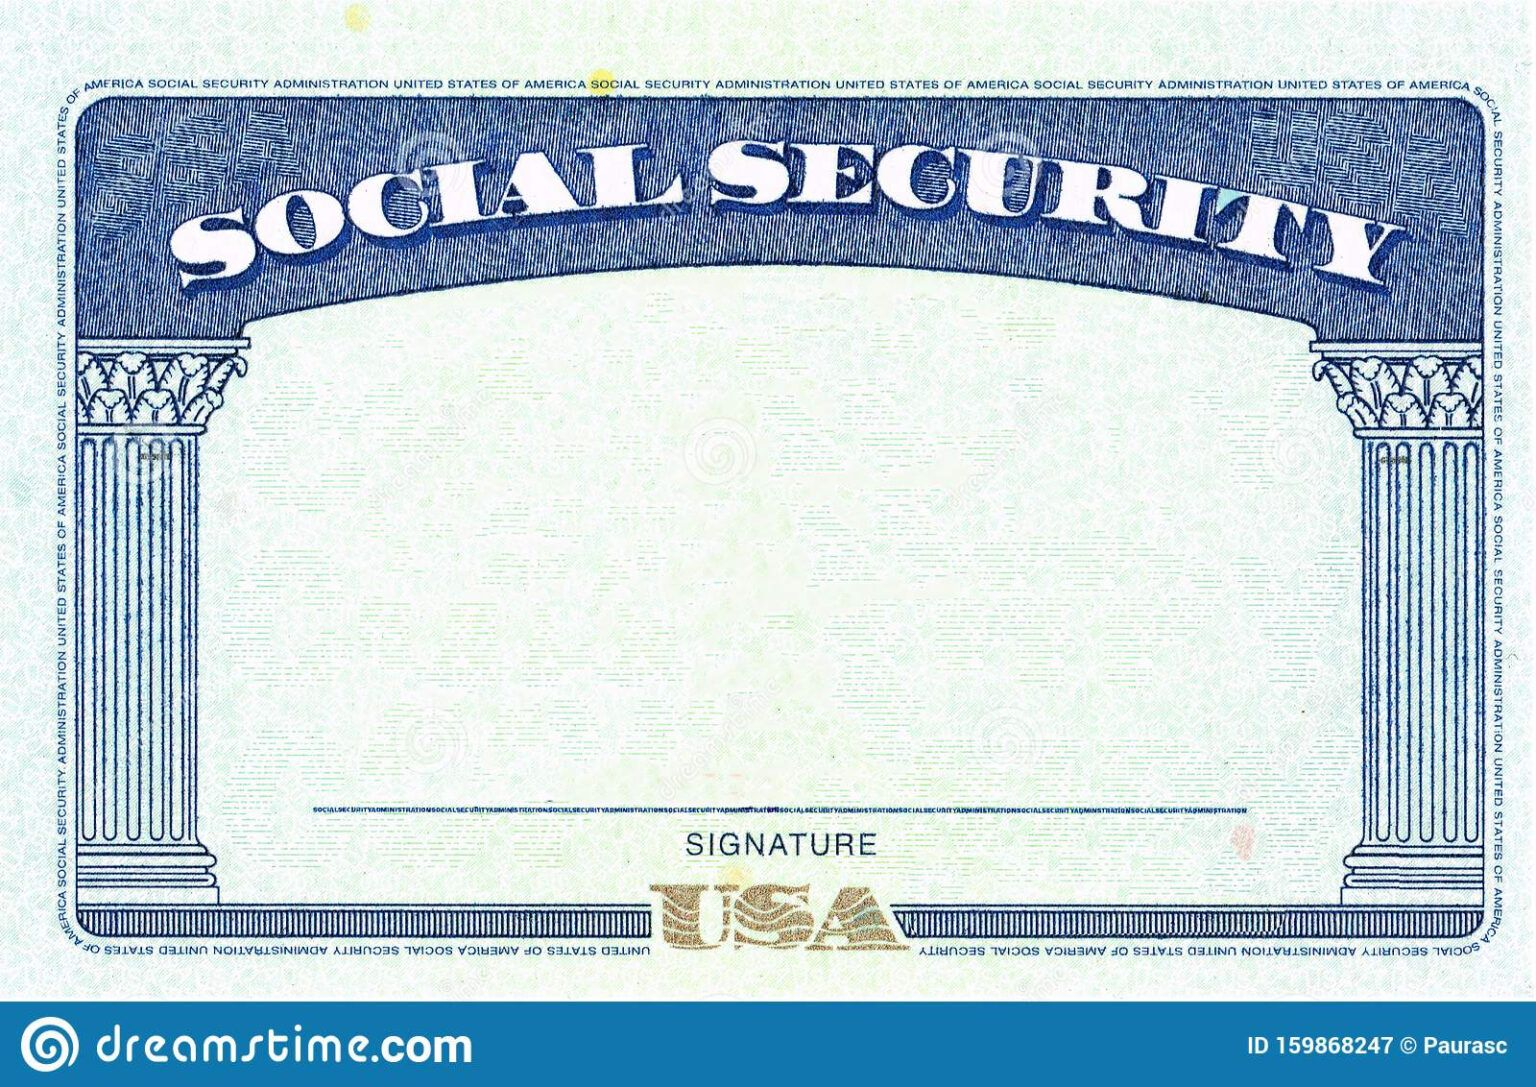 Social Security Card Blank Stock Image Image Of Emigration Pertaining To Blank Social Security Card Social Security Card Card Templates Free Id Card Template